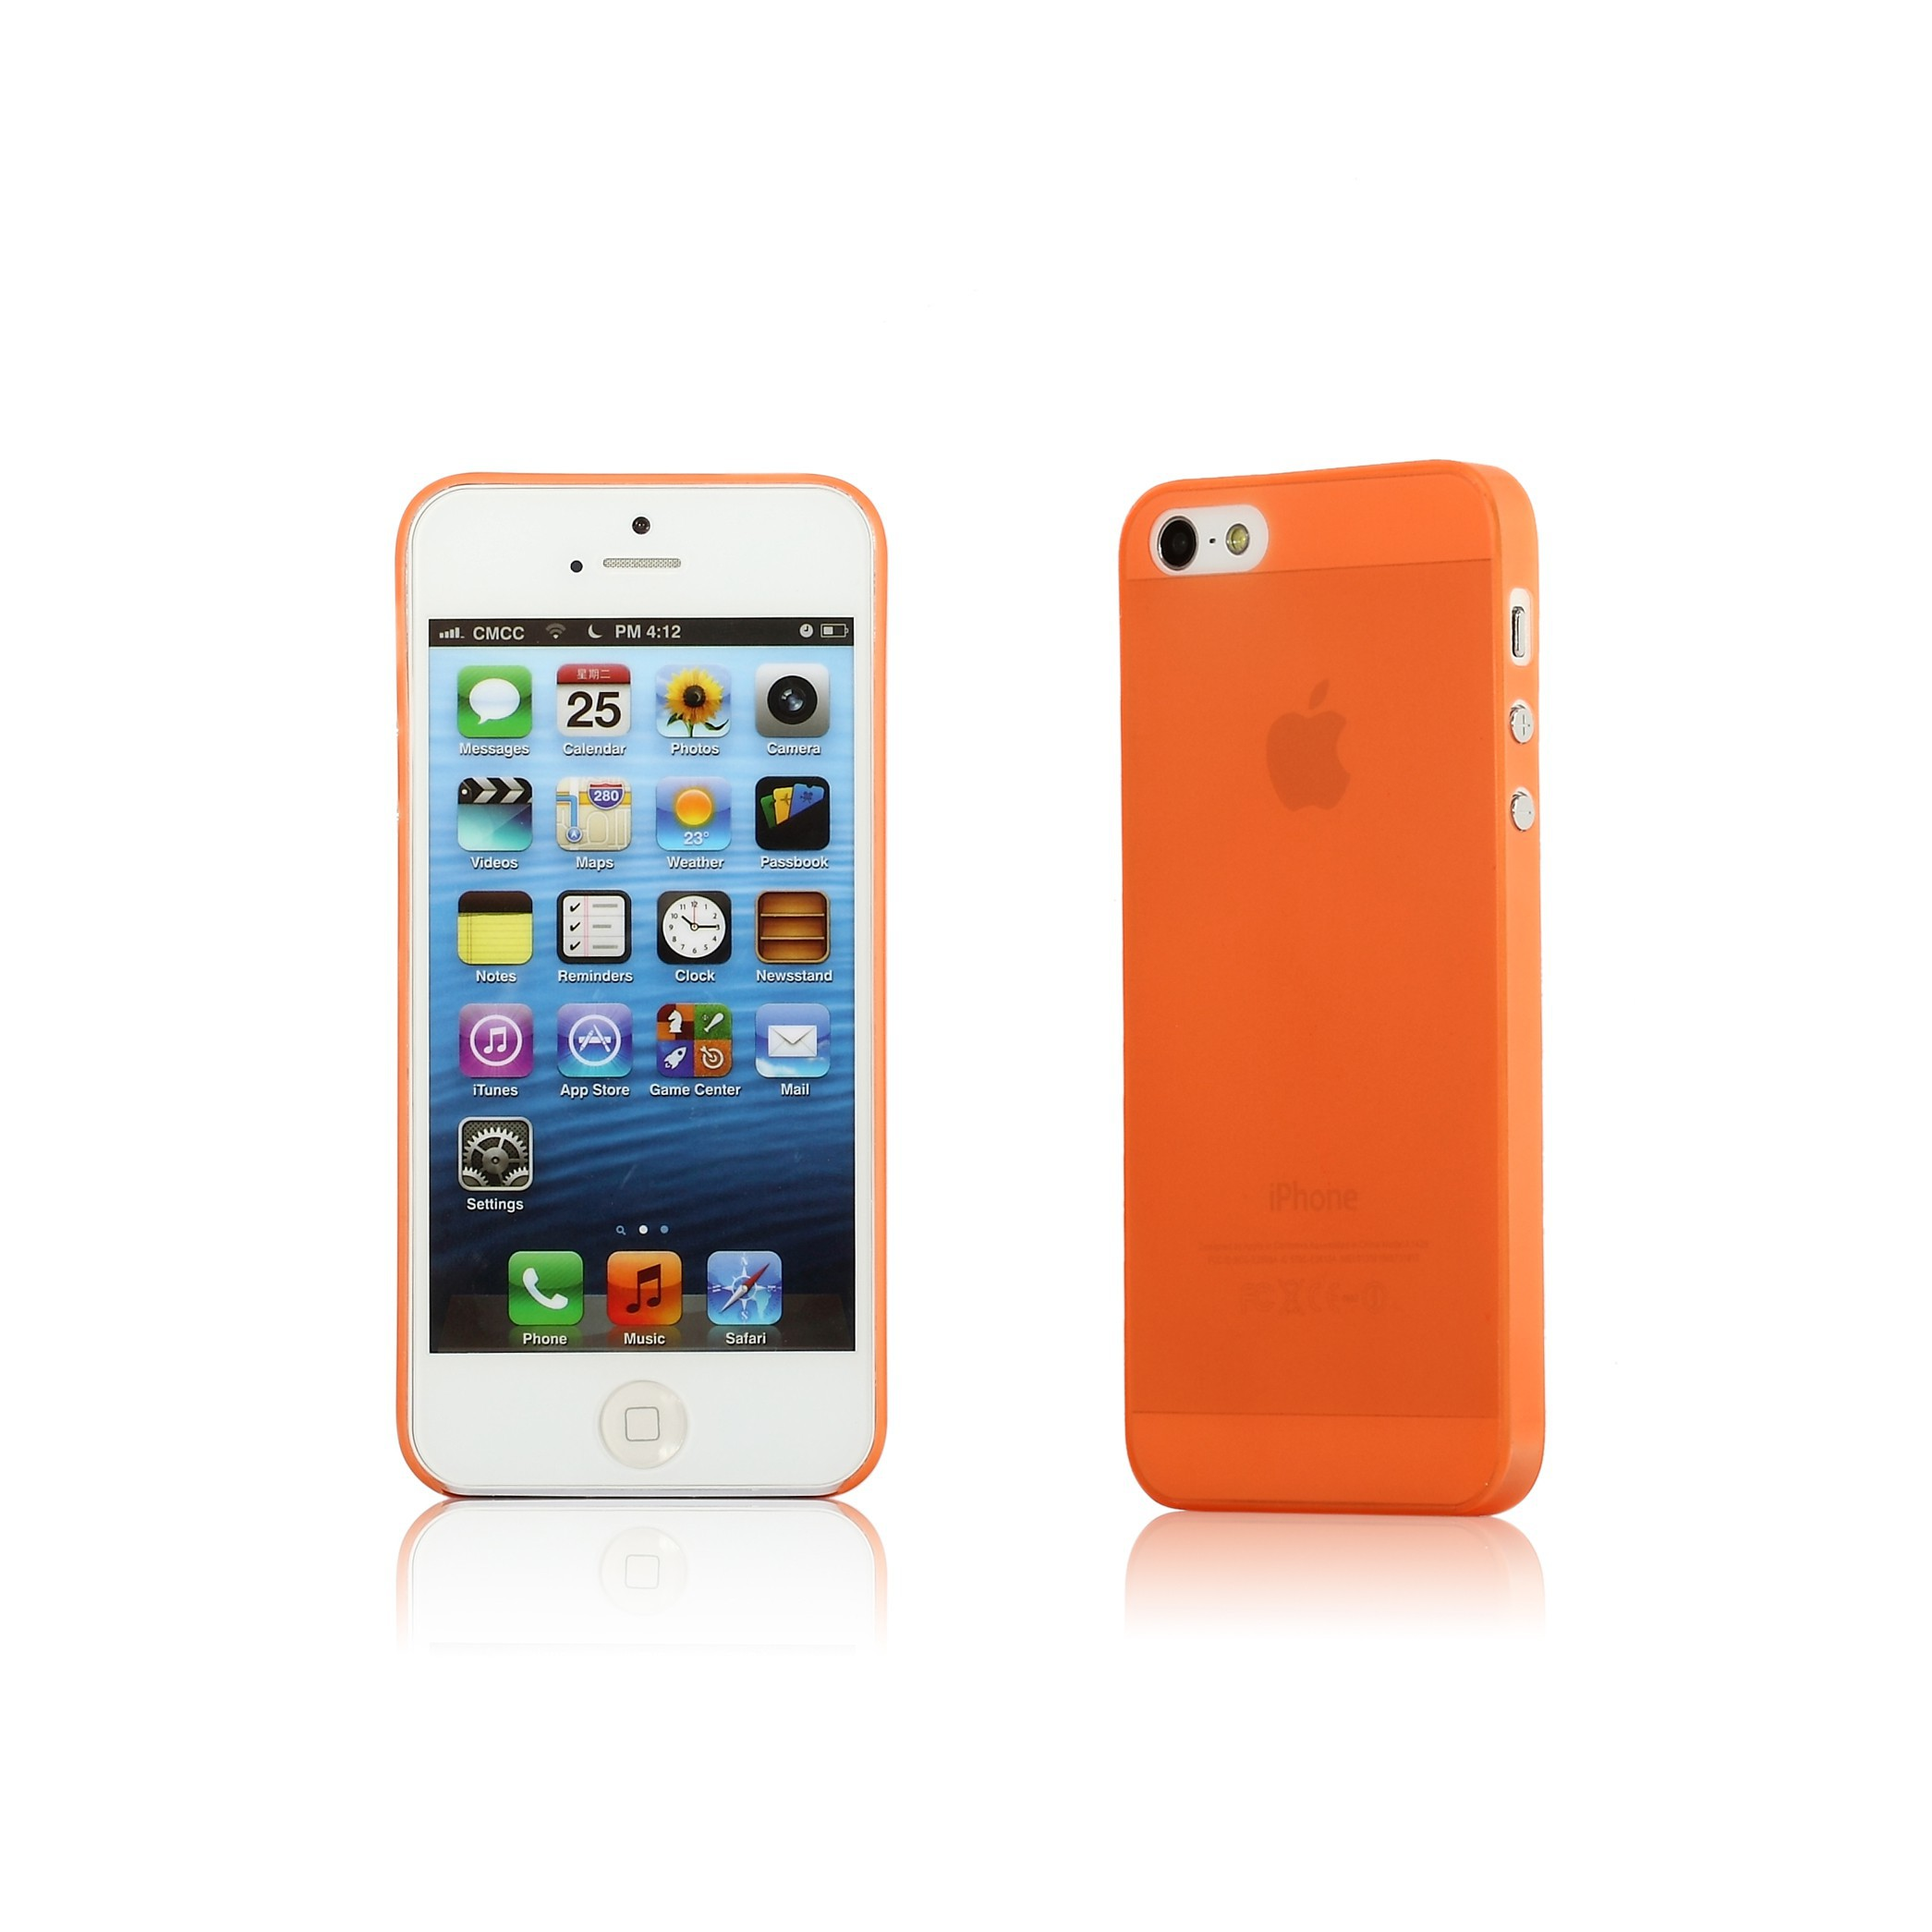 Yemota Pro Slimcase iPhone 5 / 5S - Orange